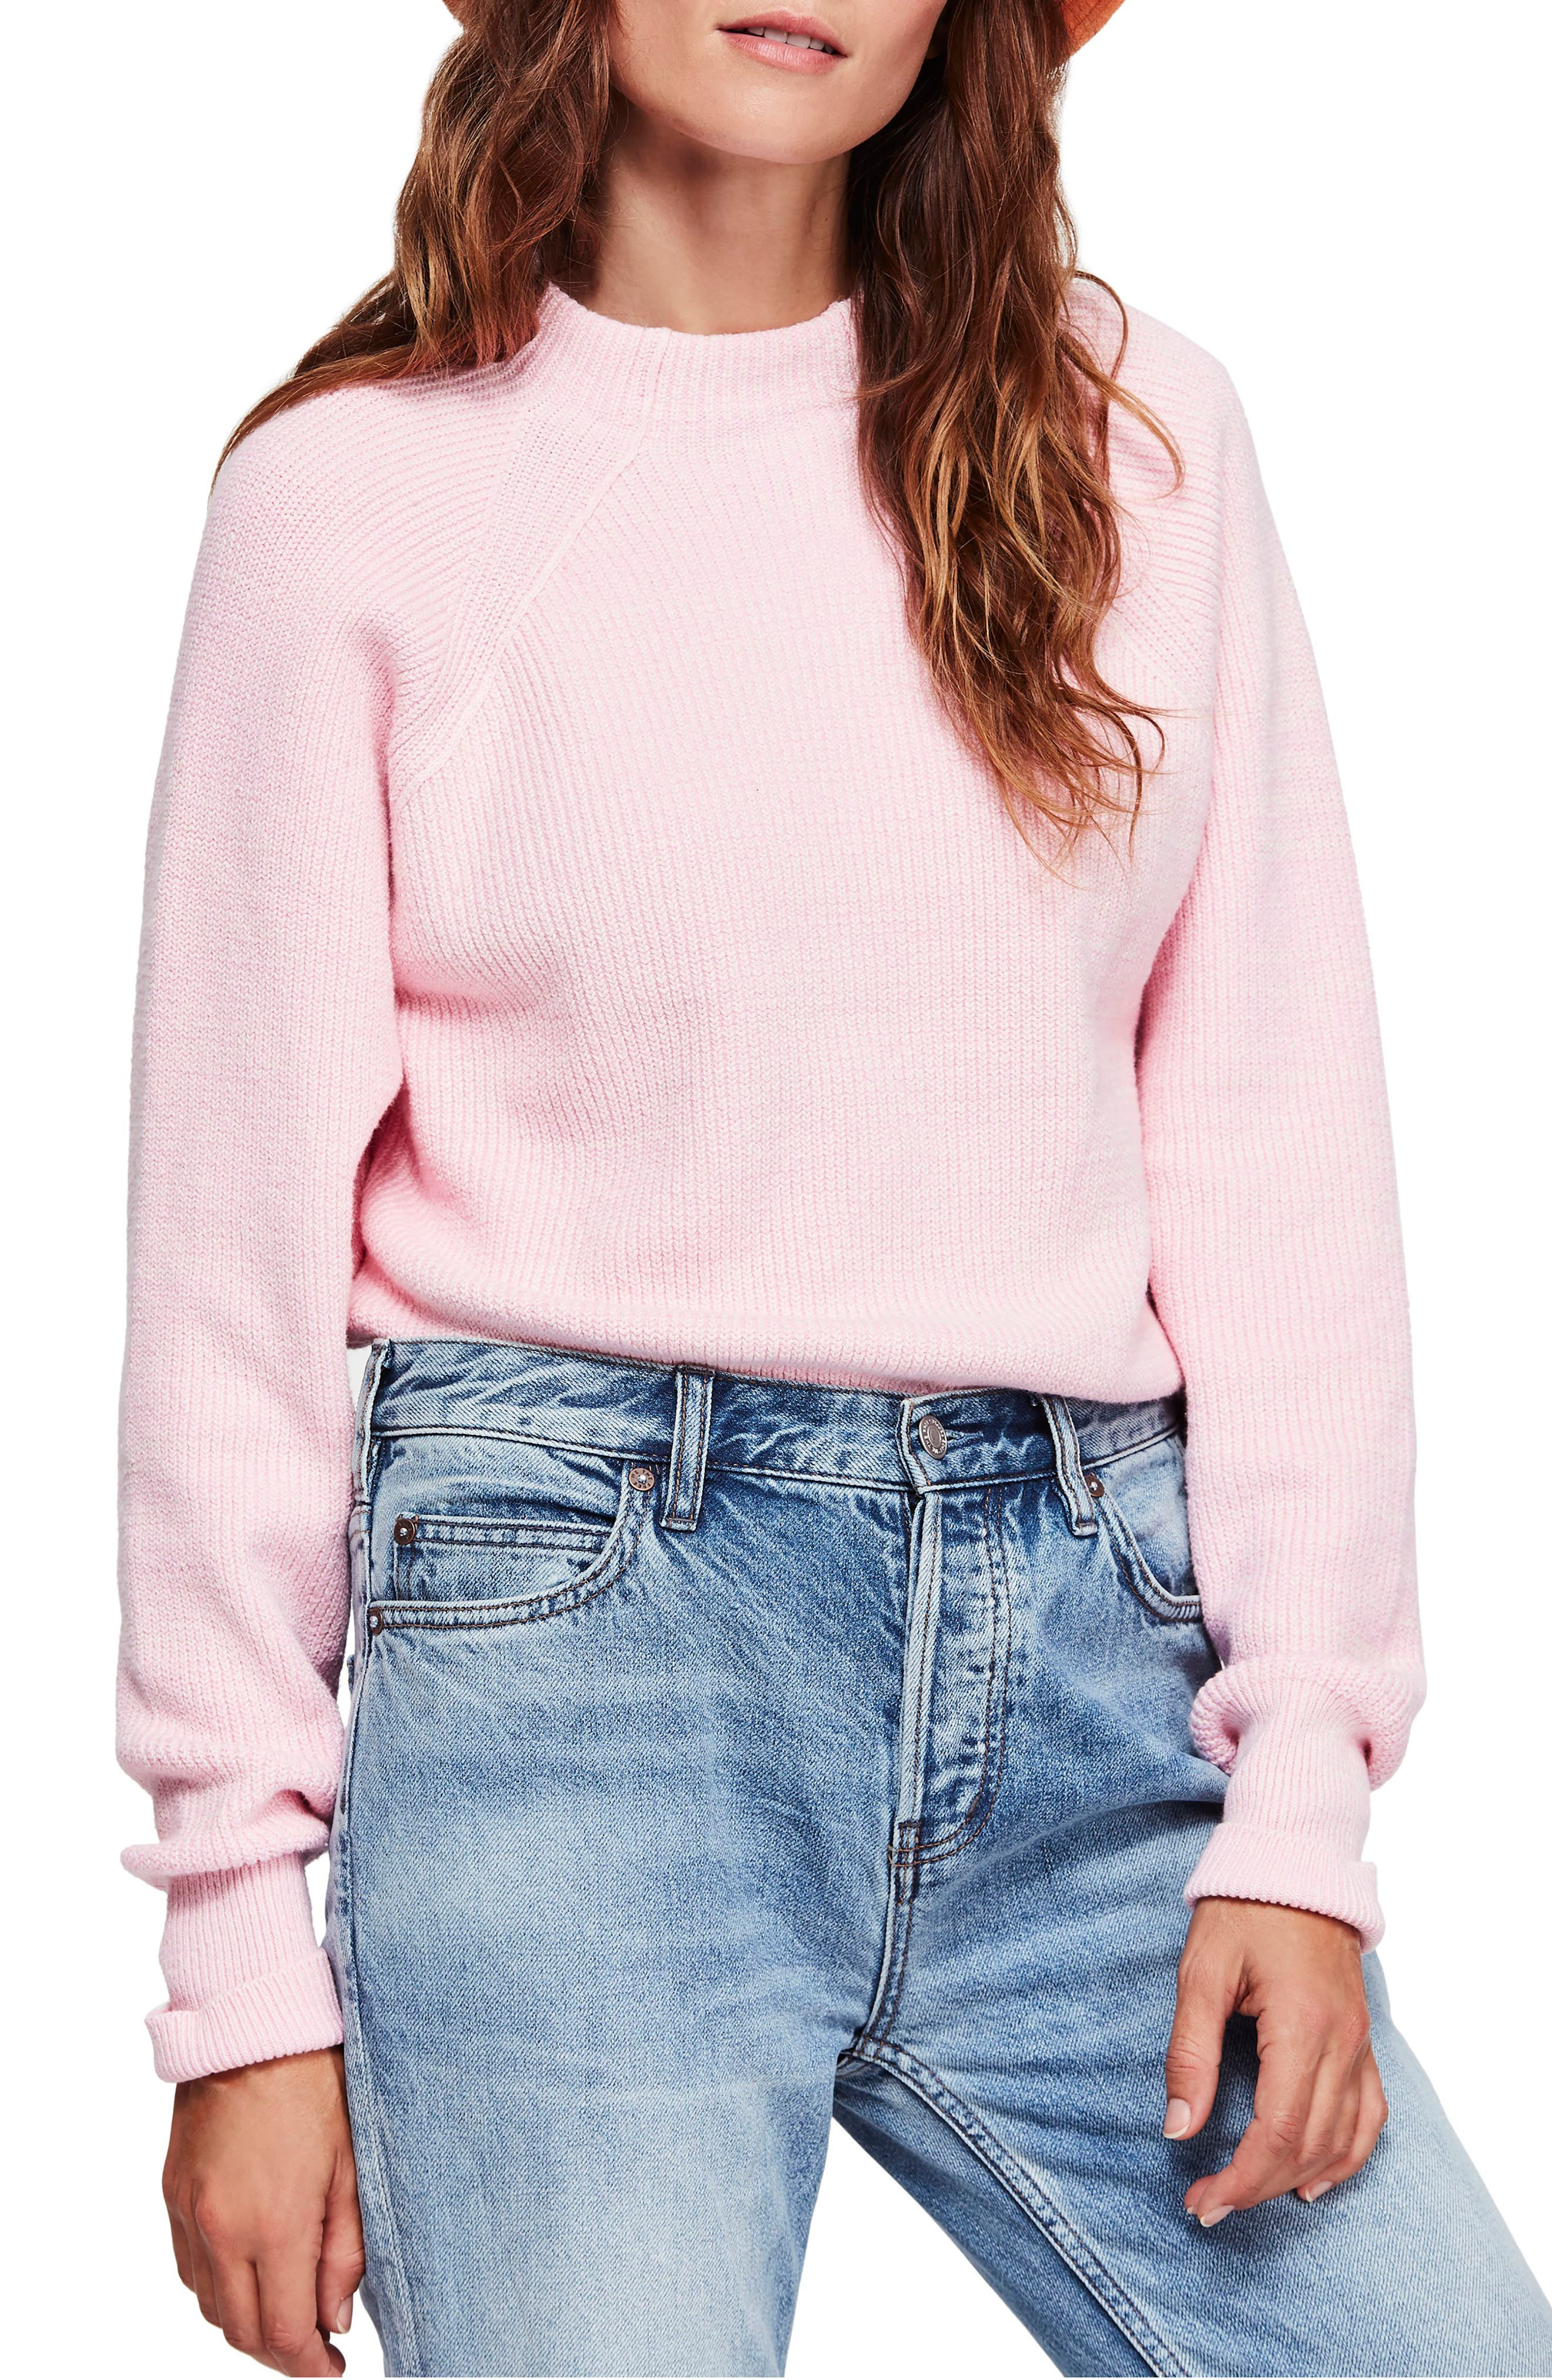 Too Good Sweater,                         Main,                         color, PINK